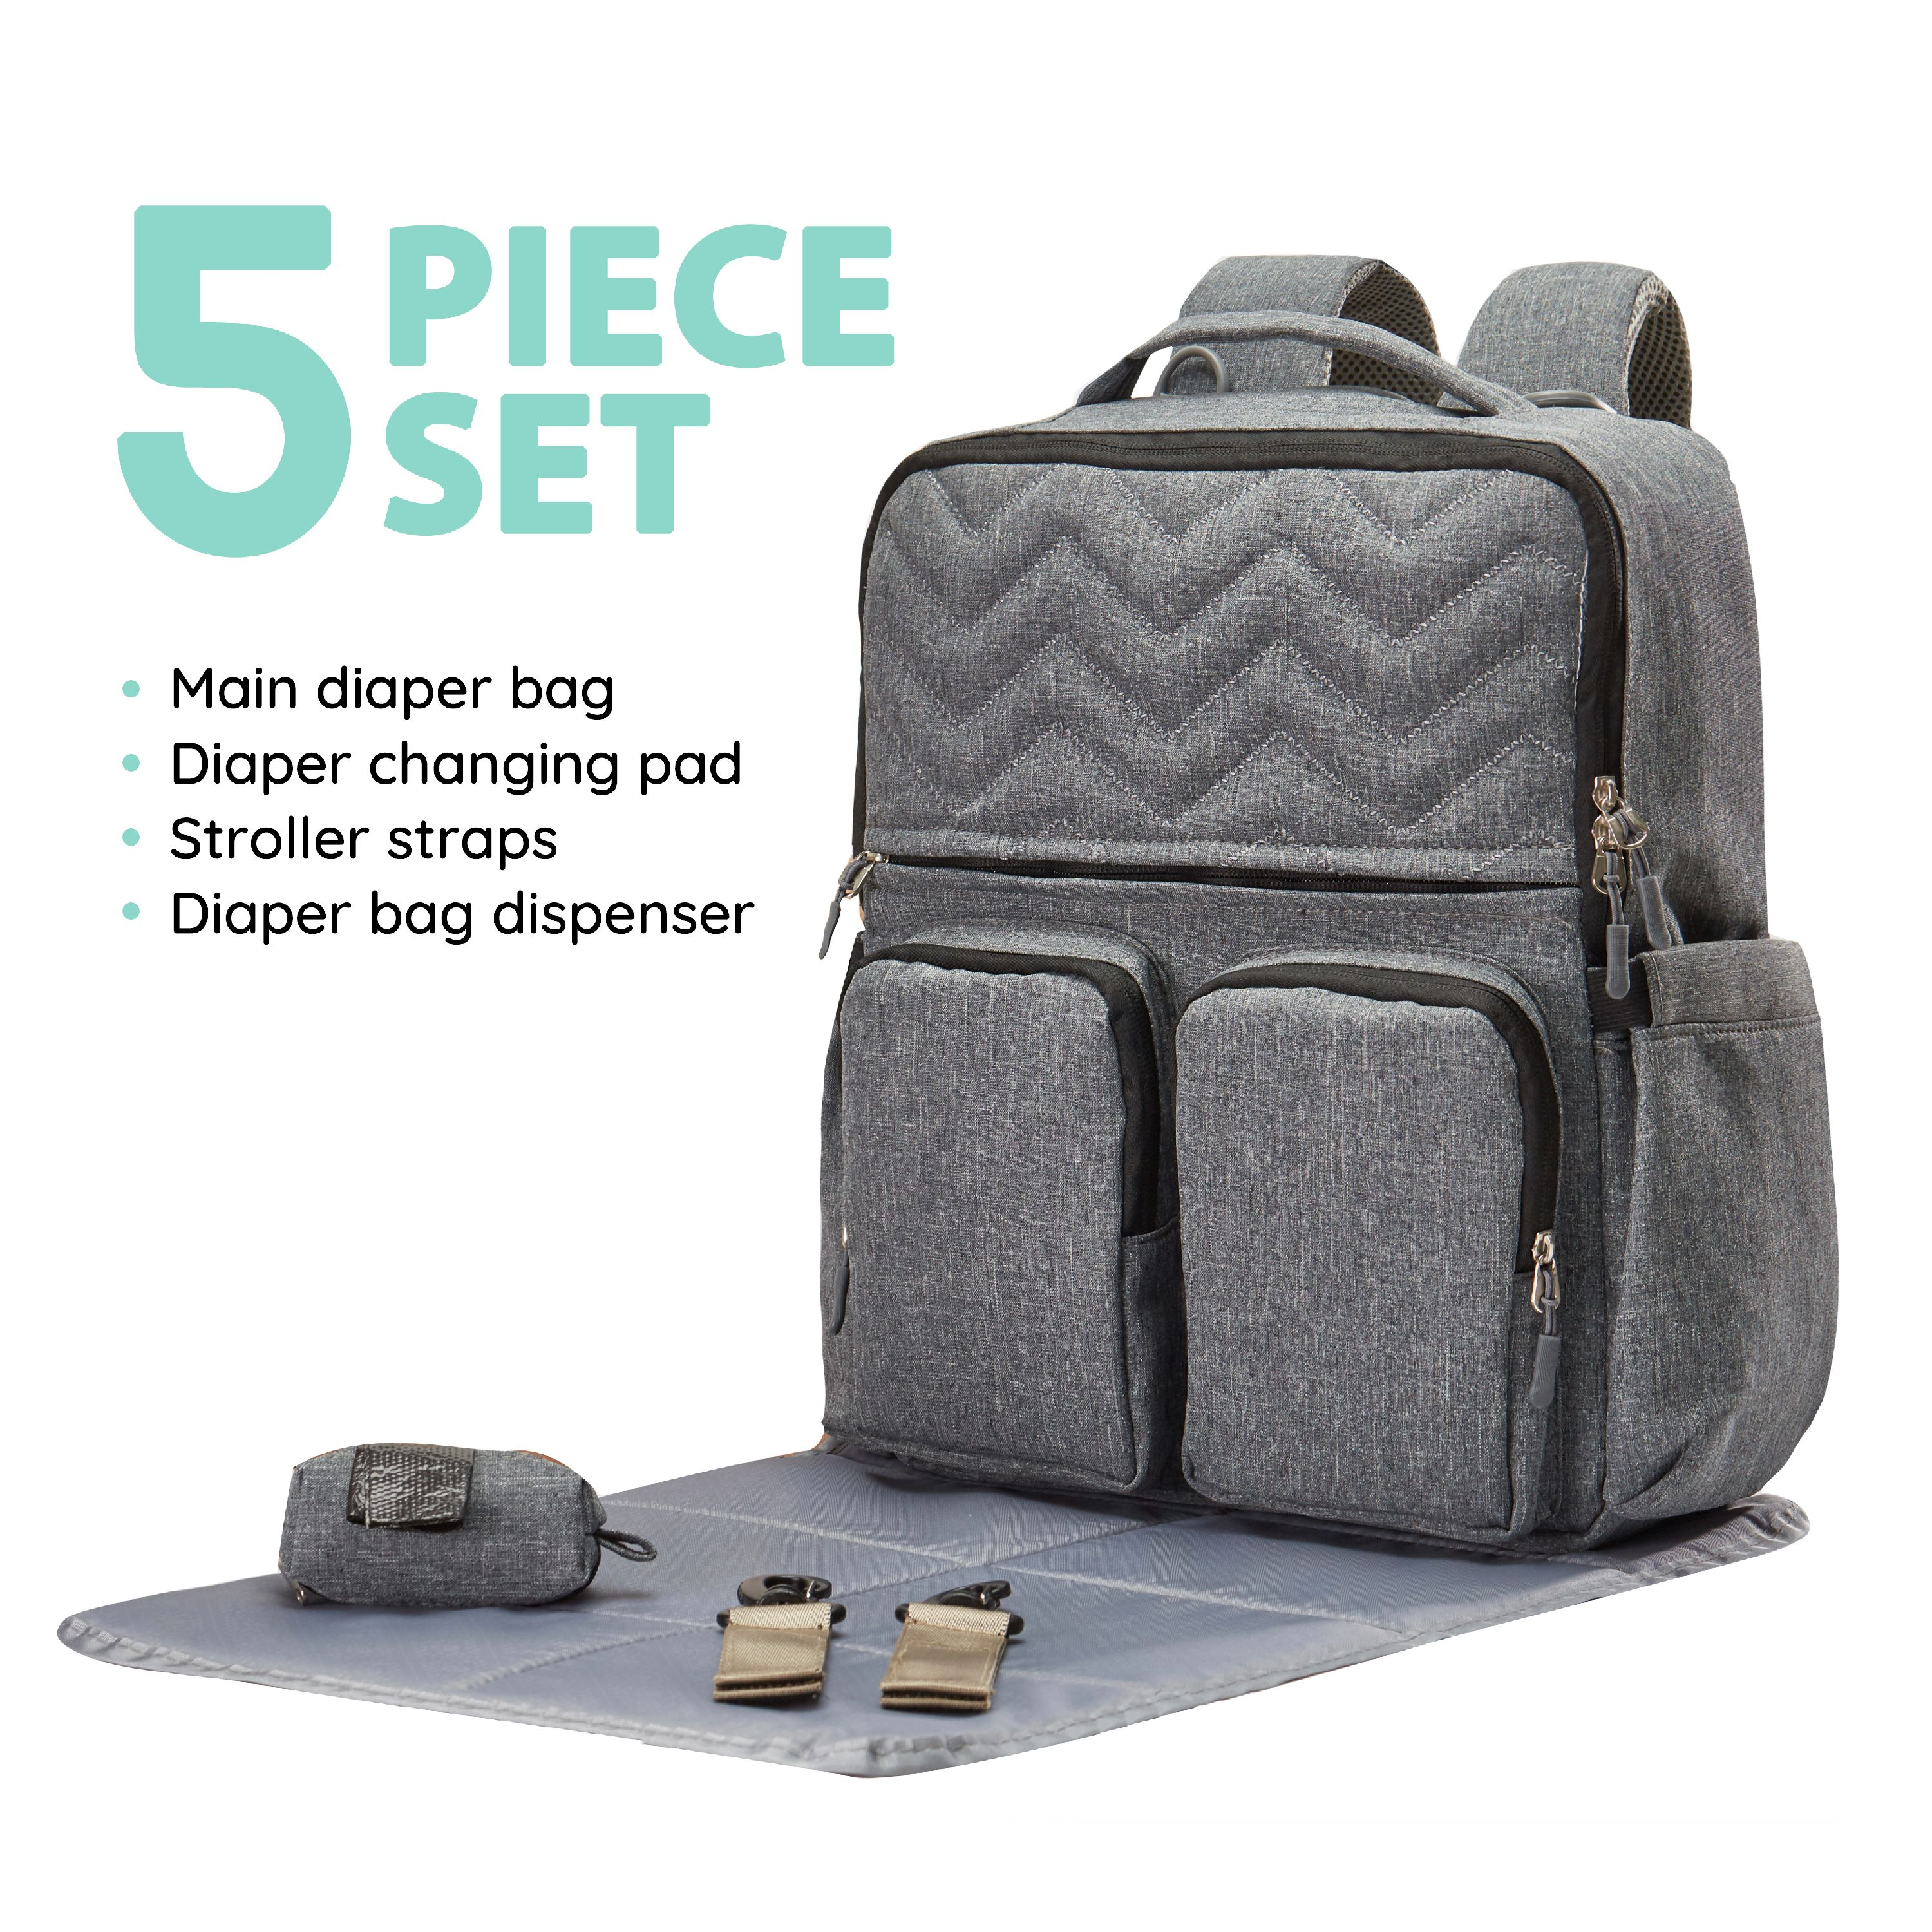 SoHo diaper bag backpack New York Chevron 5pcs set nappy tote bag for baby mom dad stylish insulated unisex multifuncation waterproof large capacity durable includes changing pad stroller straps Gray